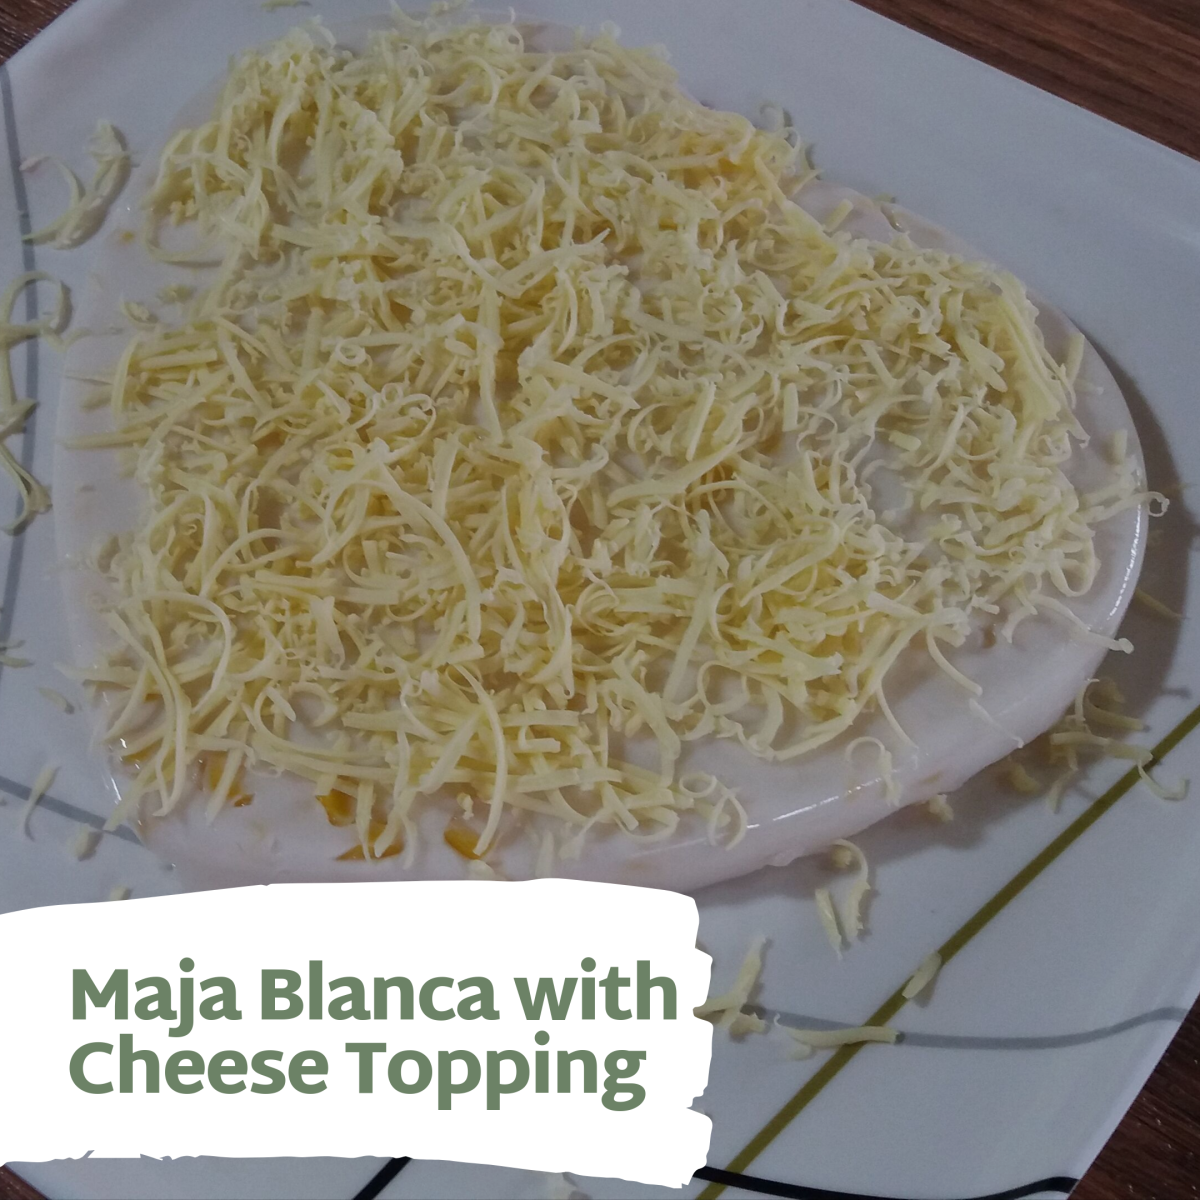 How to Cook Maja Blanca With Cheese Topping